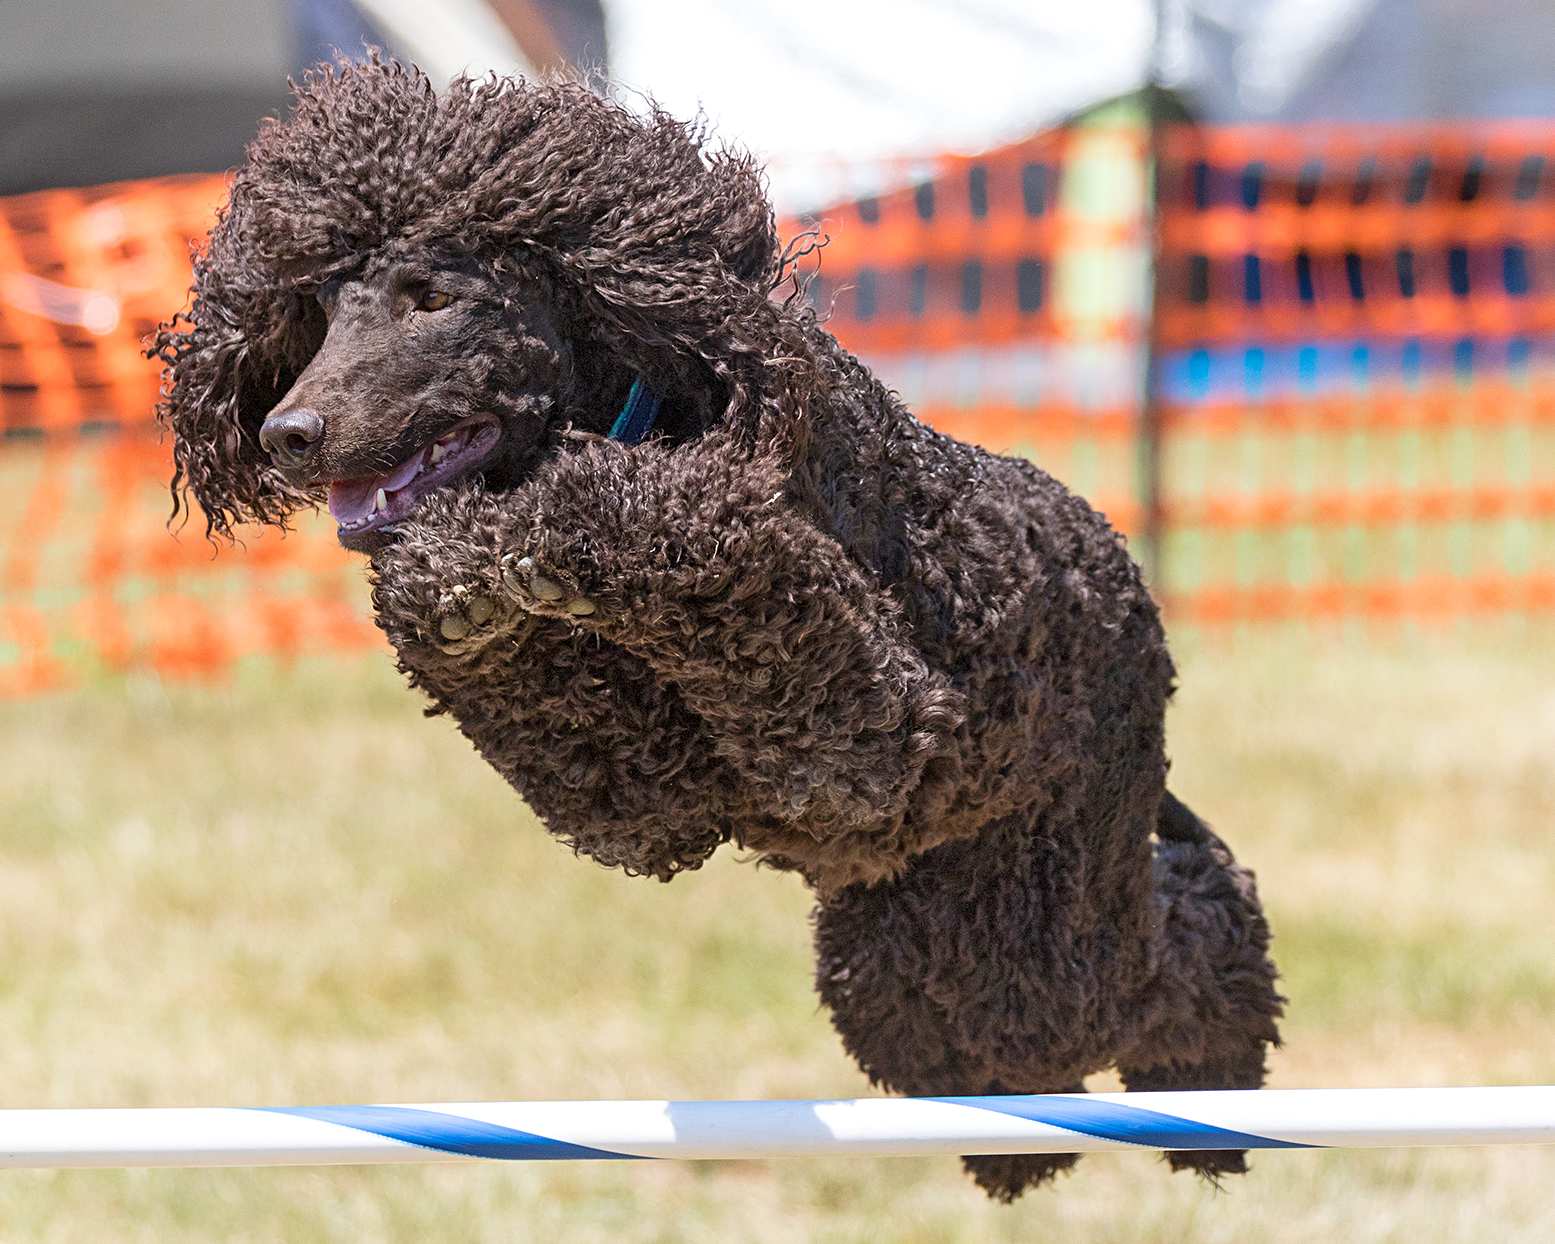 Irish water spaniel jumping over a pole on an agility course